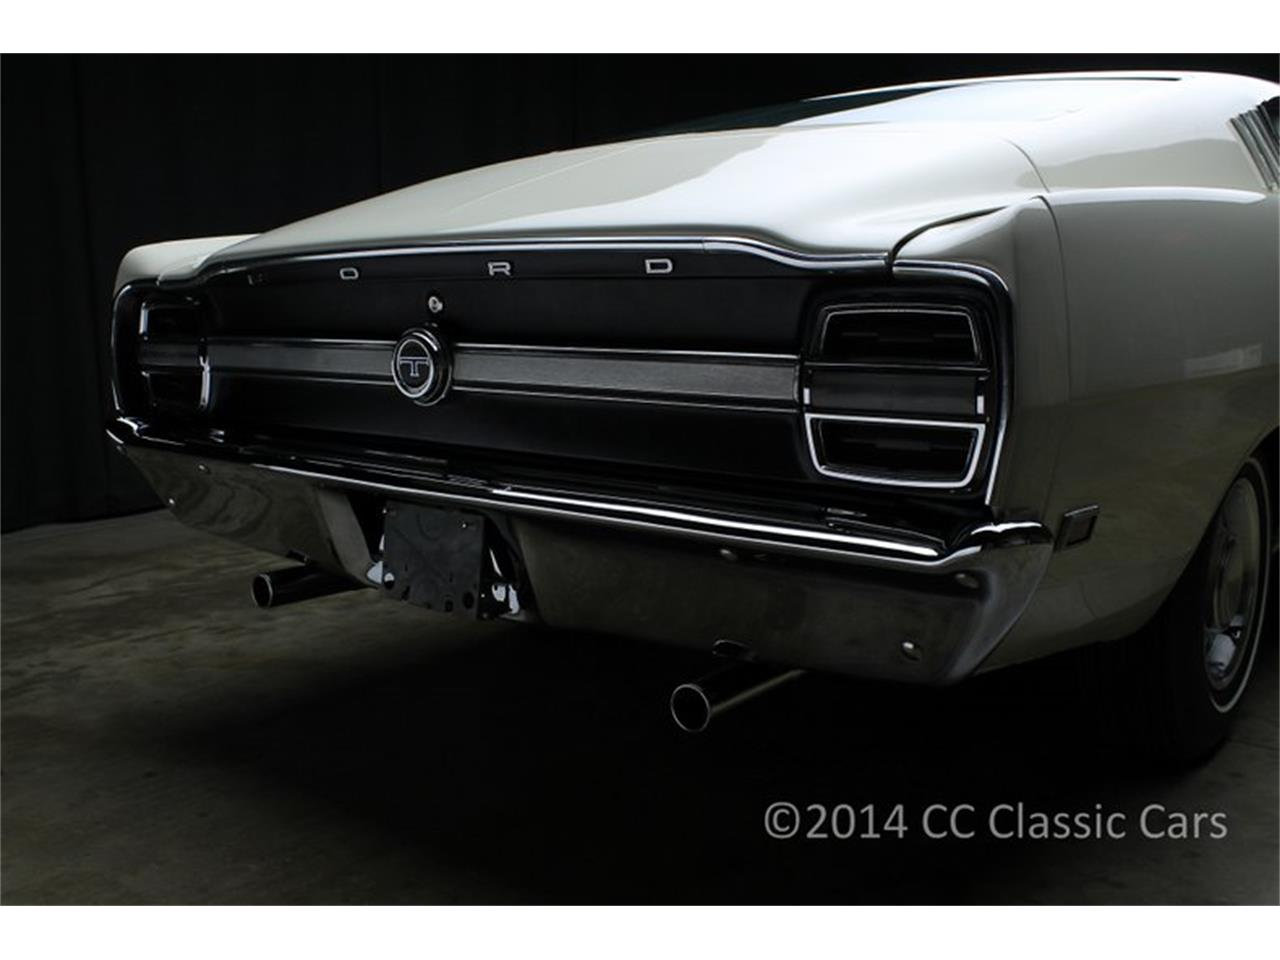 Large Picture of Classic '69 Ford Torino located in West Chester Pennsylvania - $69,900.00 - HZ0H